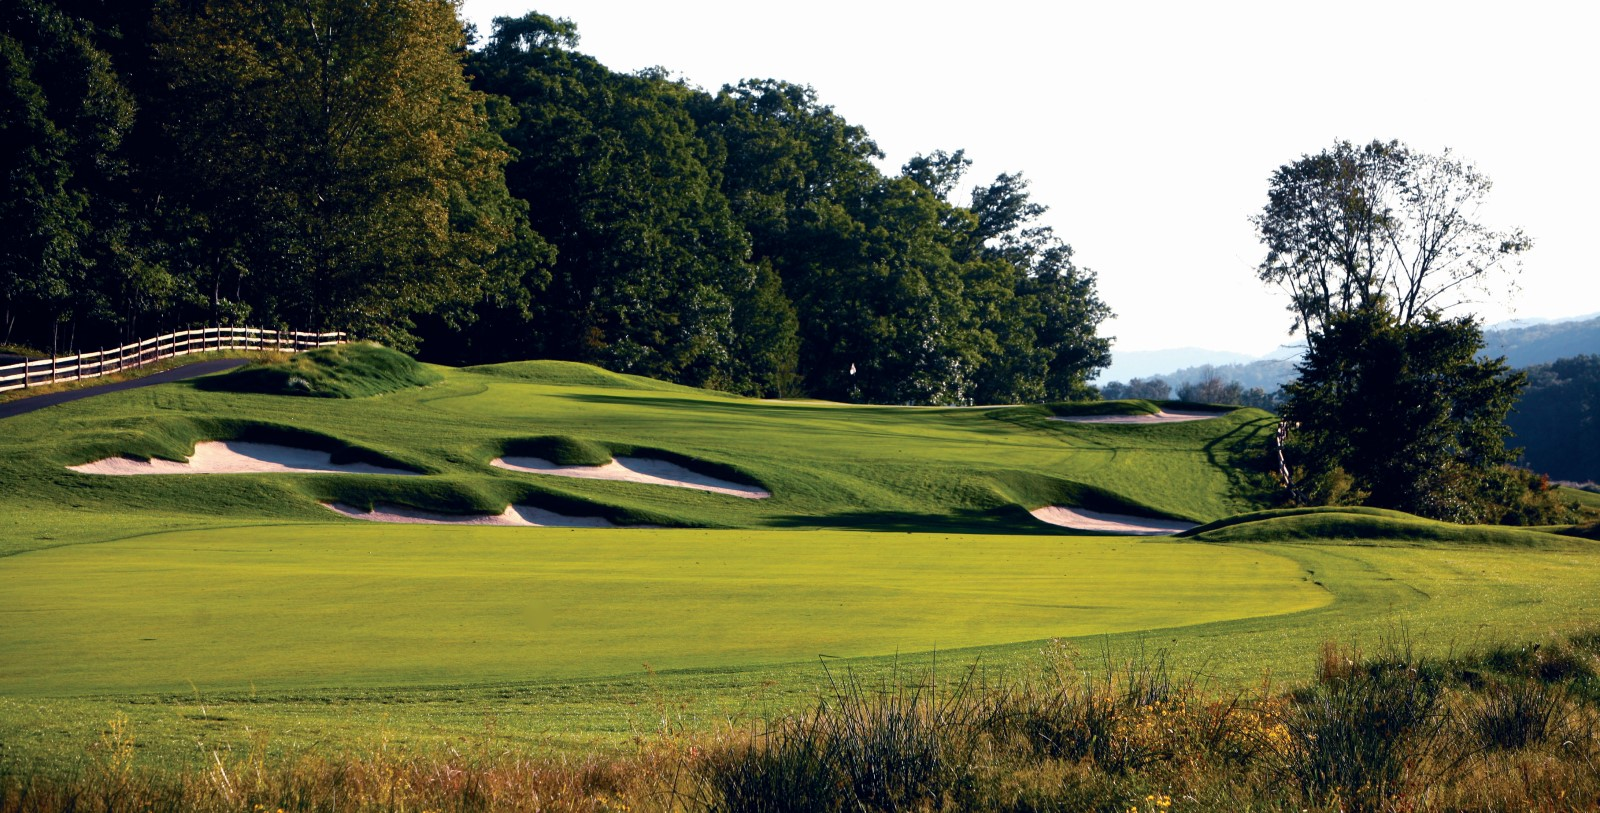 Image of Old Course, Omni Bedford Springs Resort & Spa, Bedford, Pennsylvania, 1806, Member of Historic Hotels of America, Golf